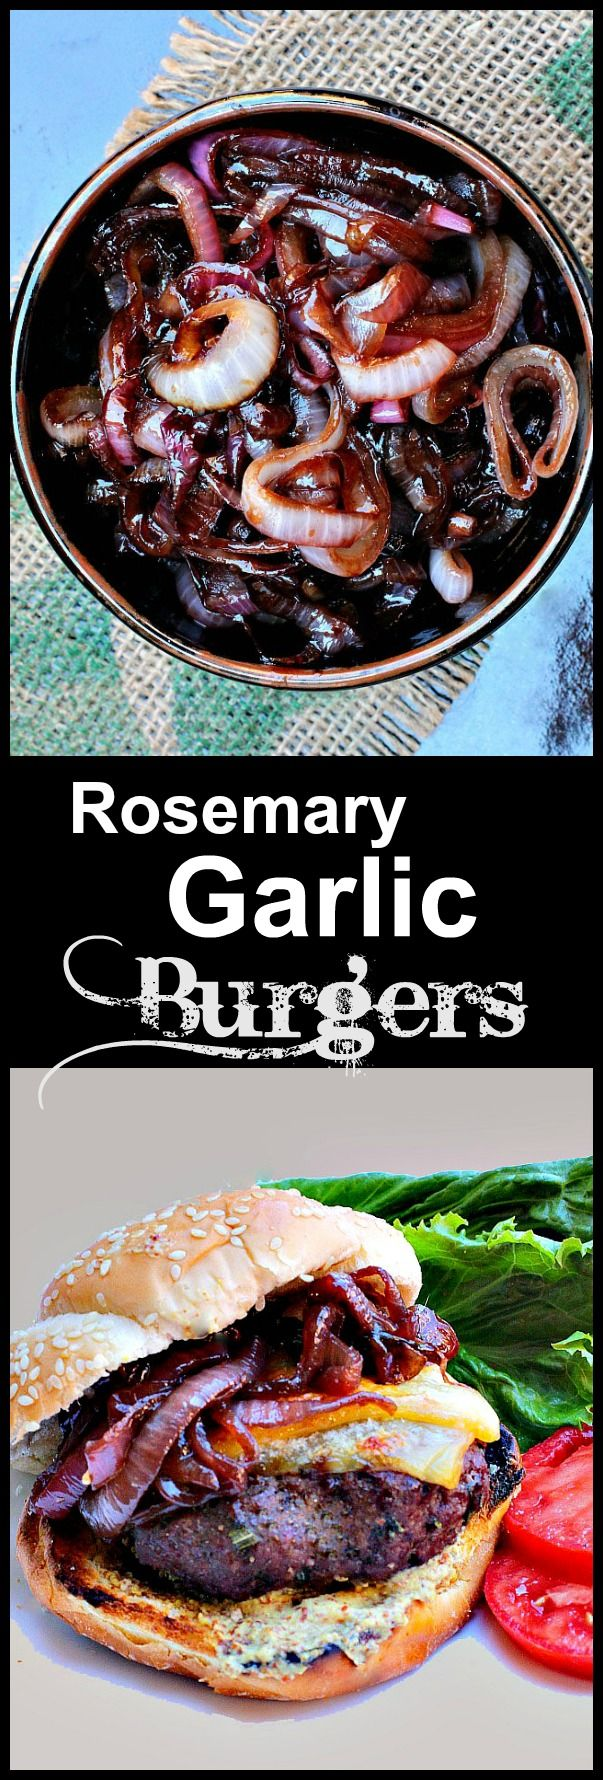 A burger recipe that you want and need. With wine caramelized red onions and hickory smoked gruyere. Add a grainy Dijon this is killer. via @lannisam